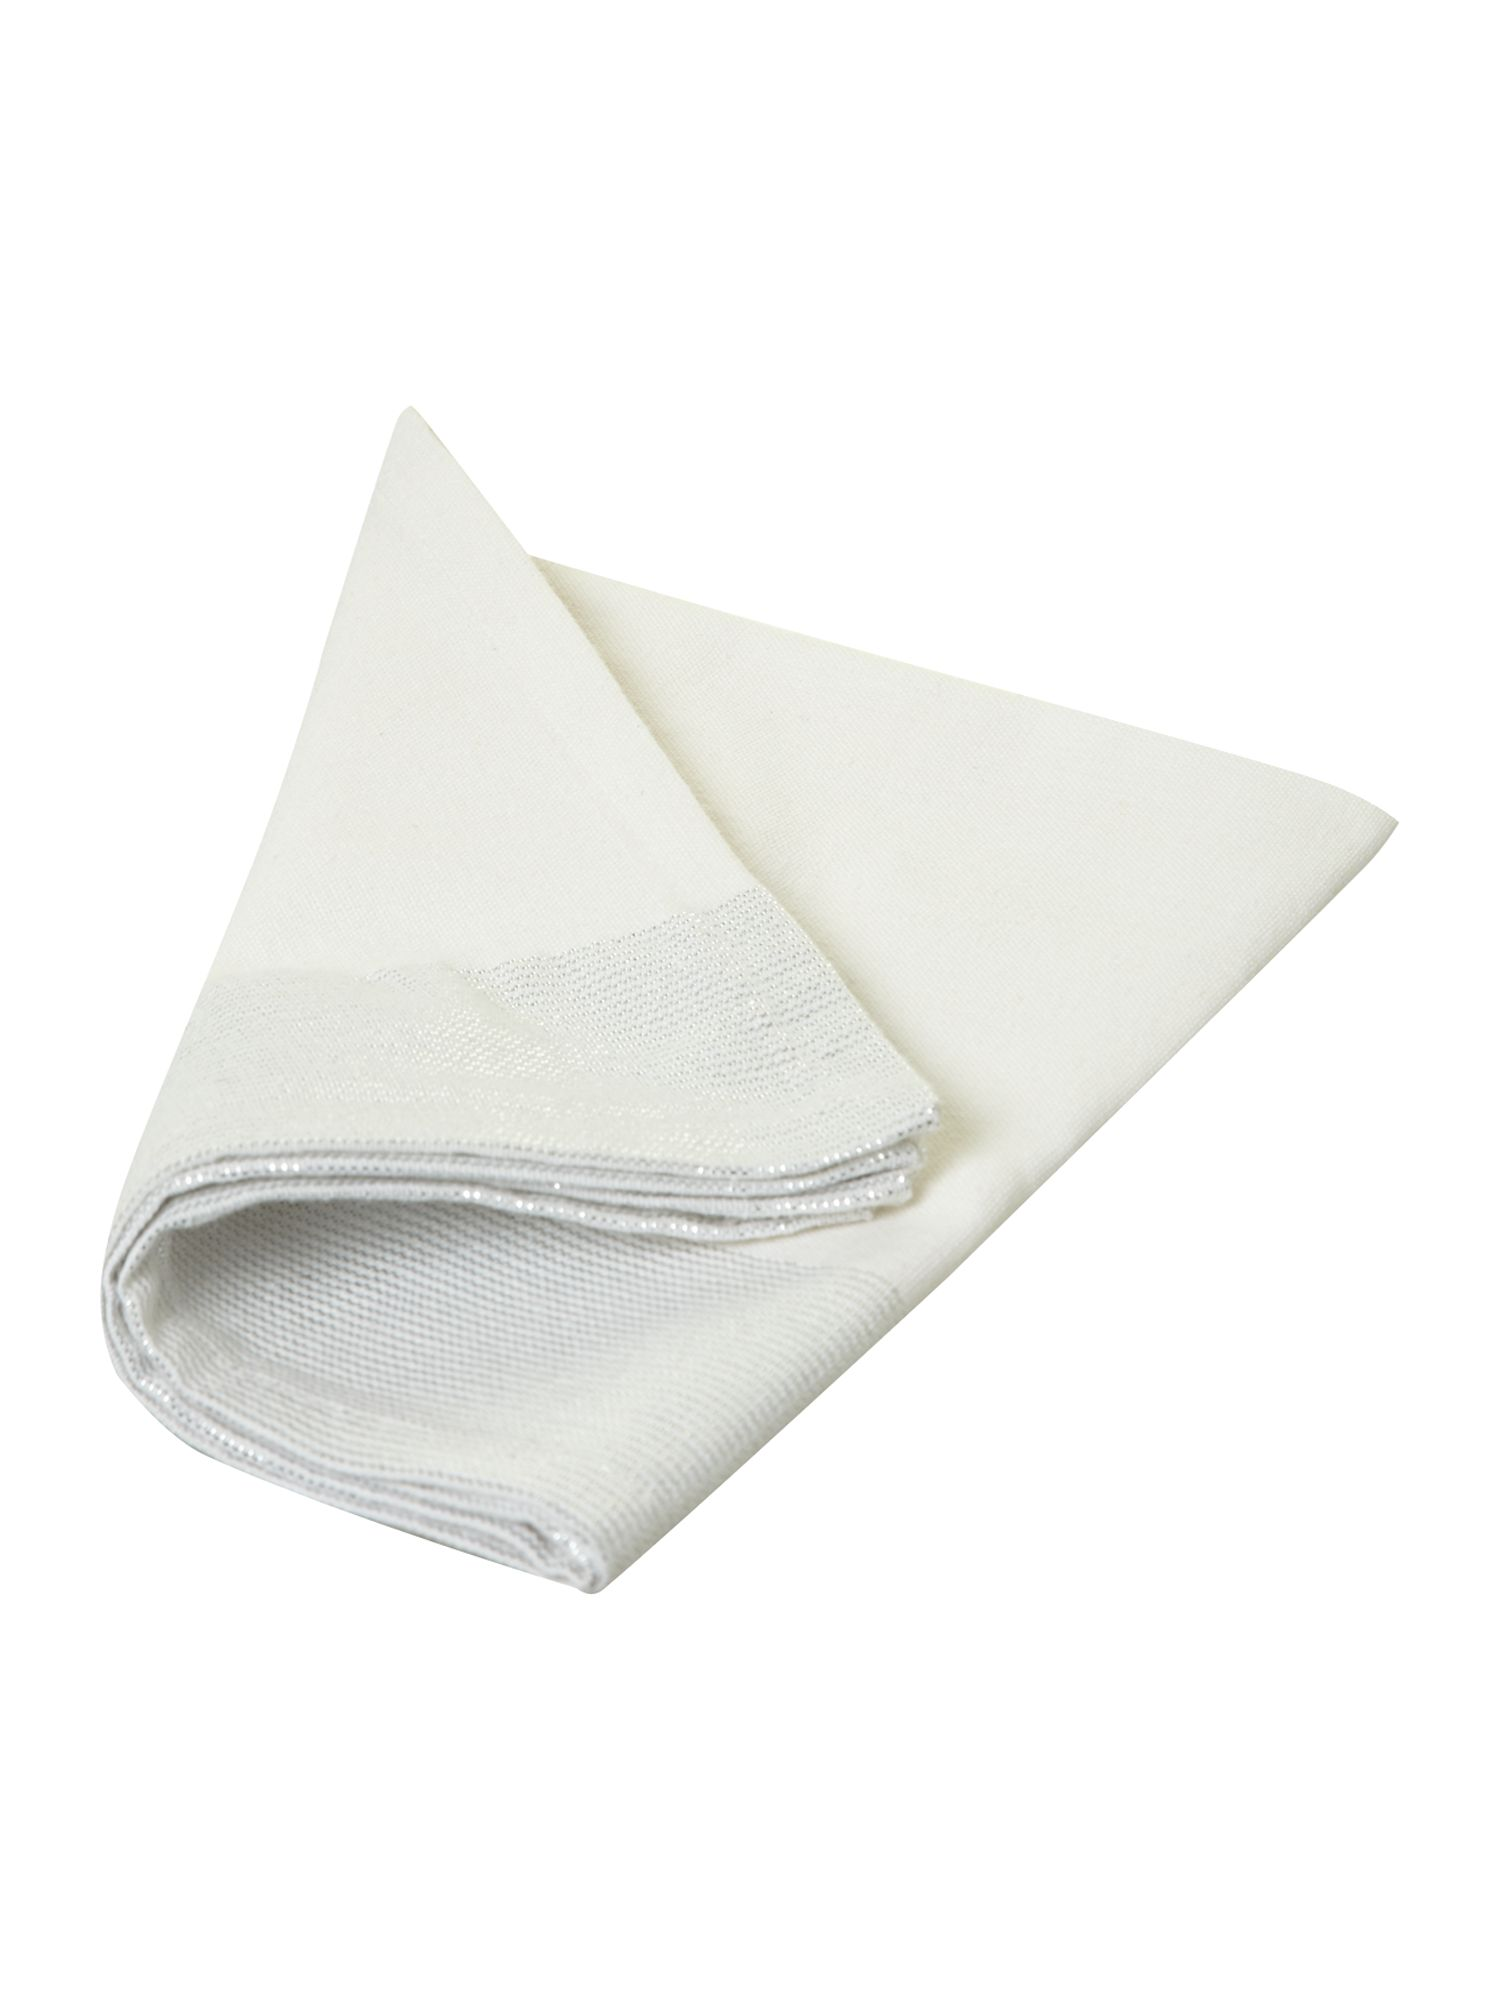 White sparkle tablelinen